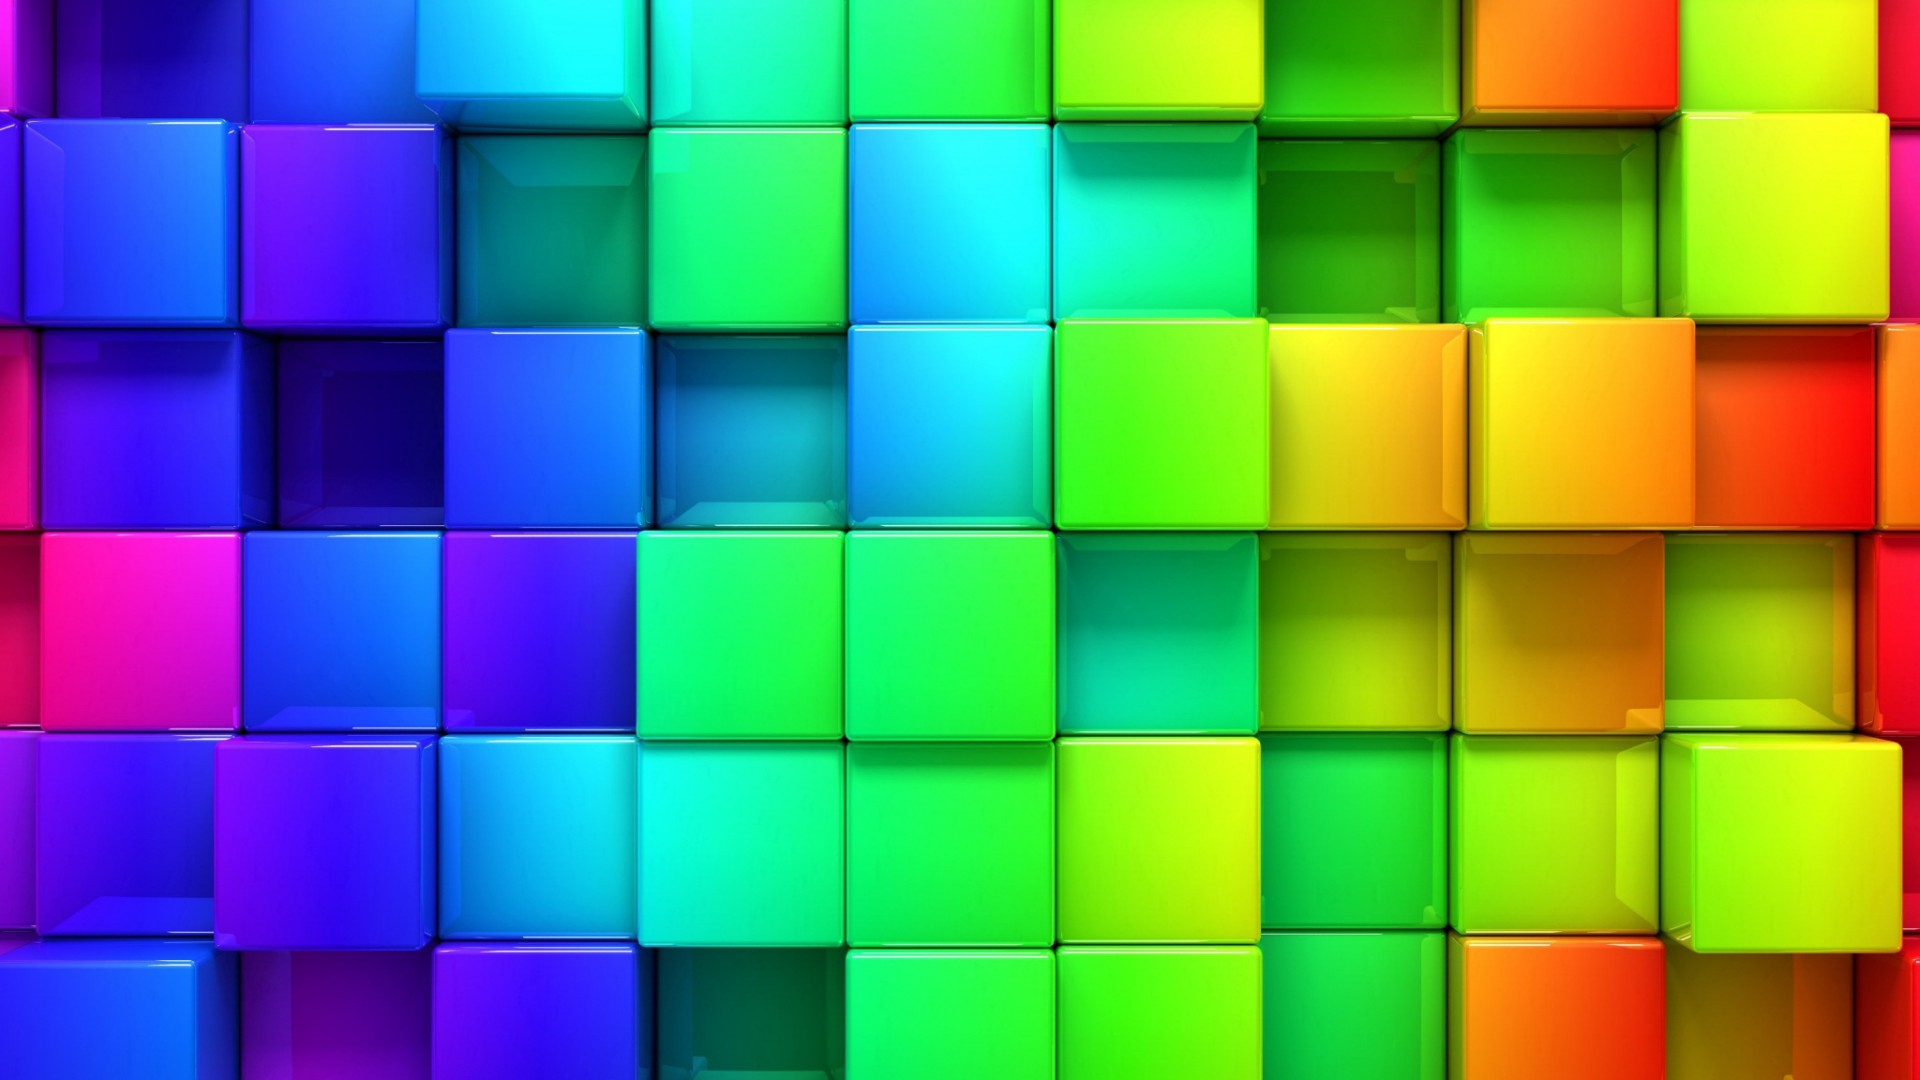 colorful-wall-of-cubes-in-d-hd-wallpaper-abstract-d-picture-hd